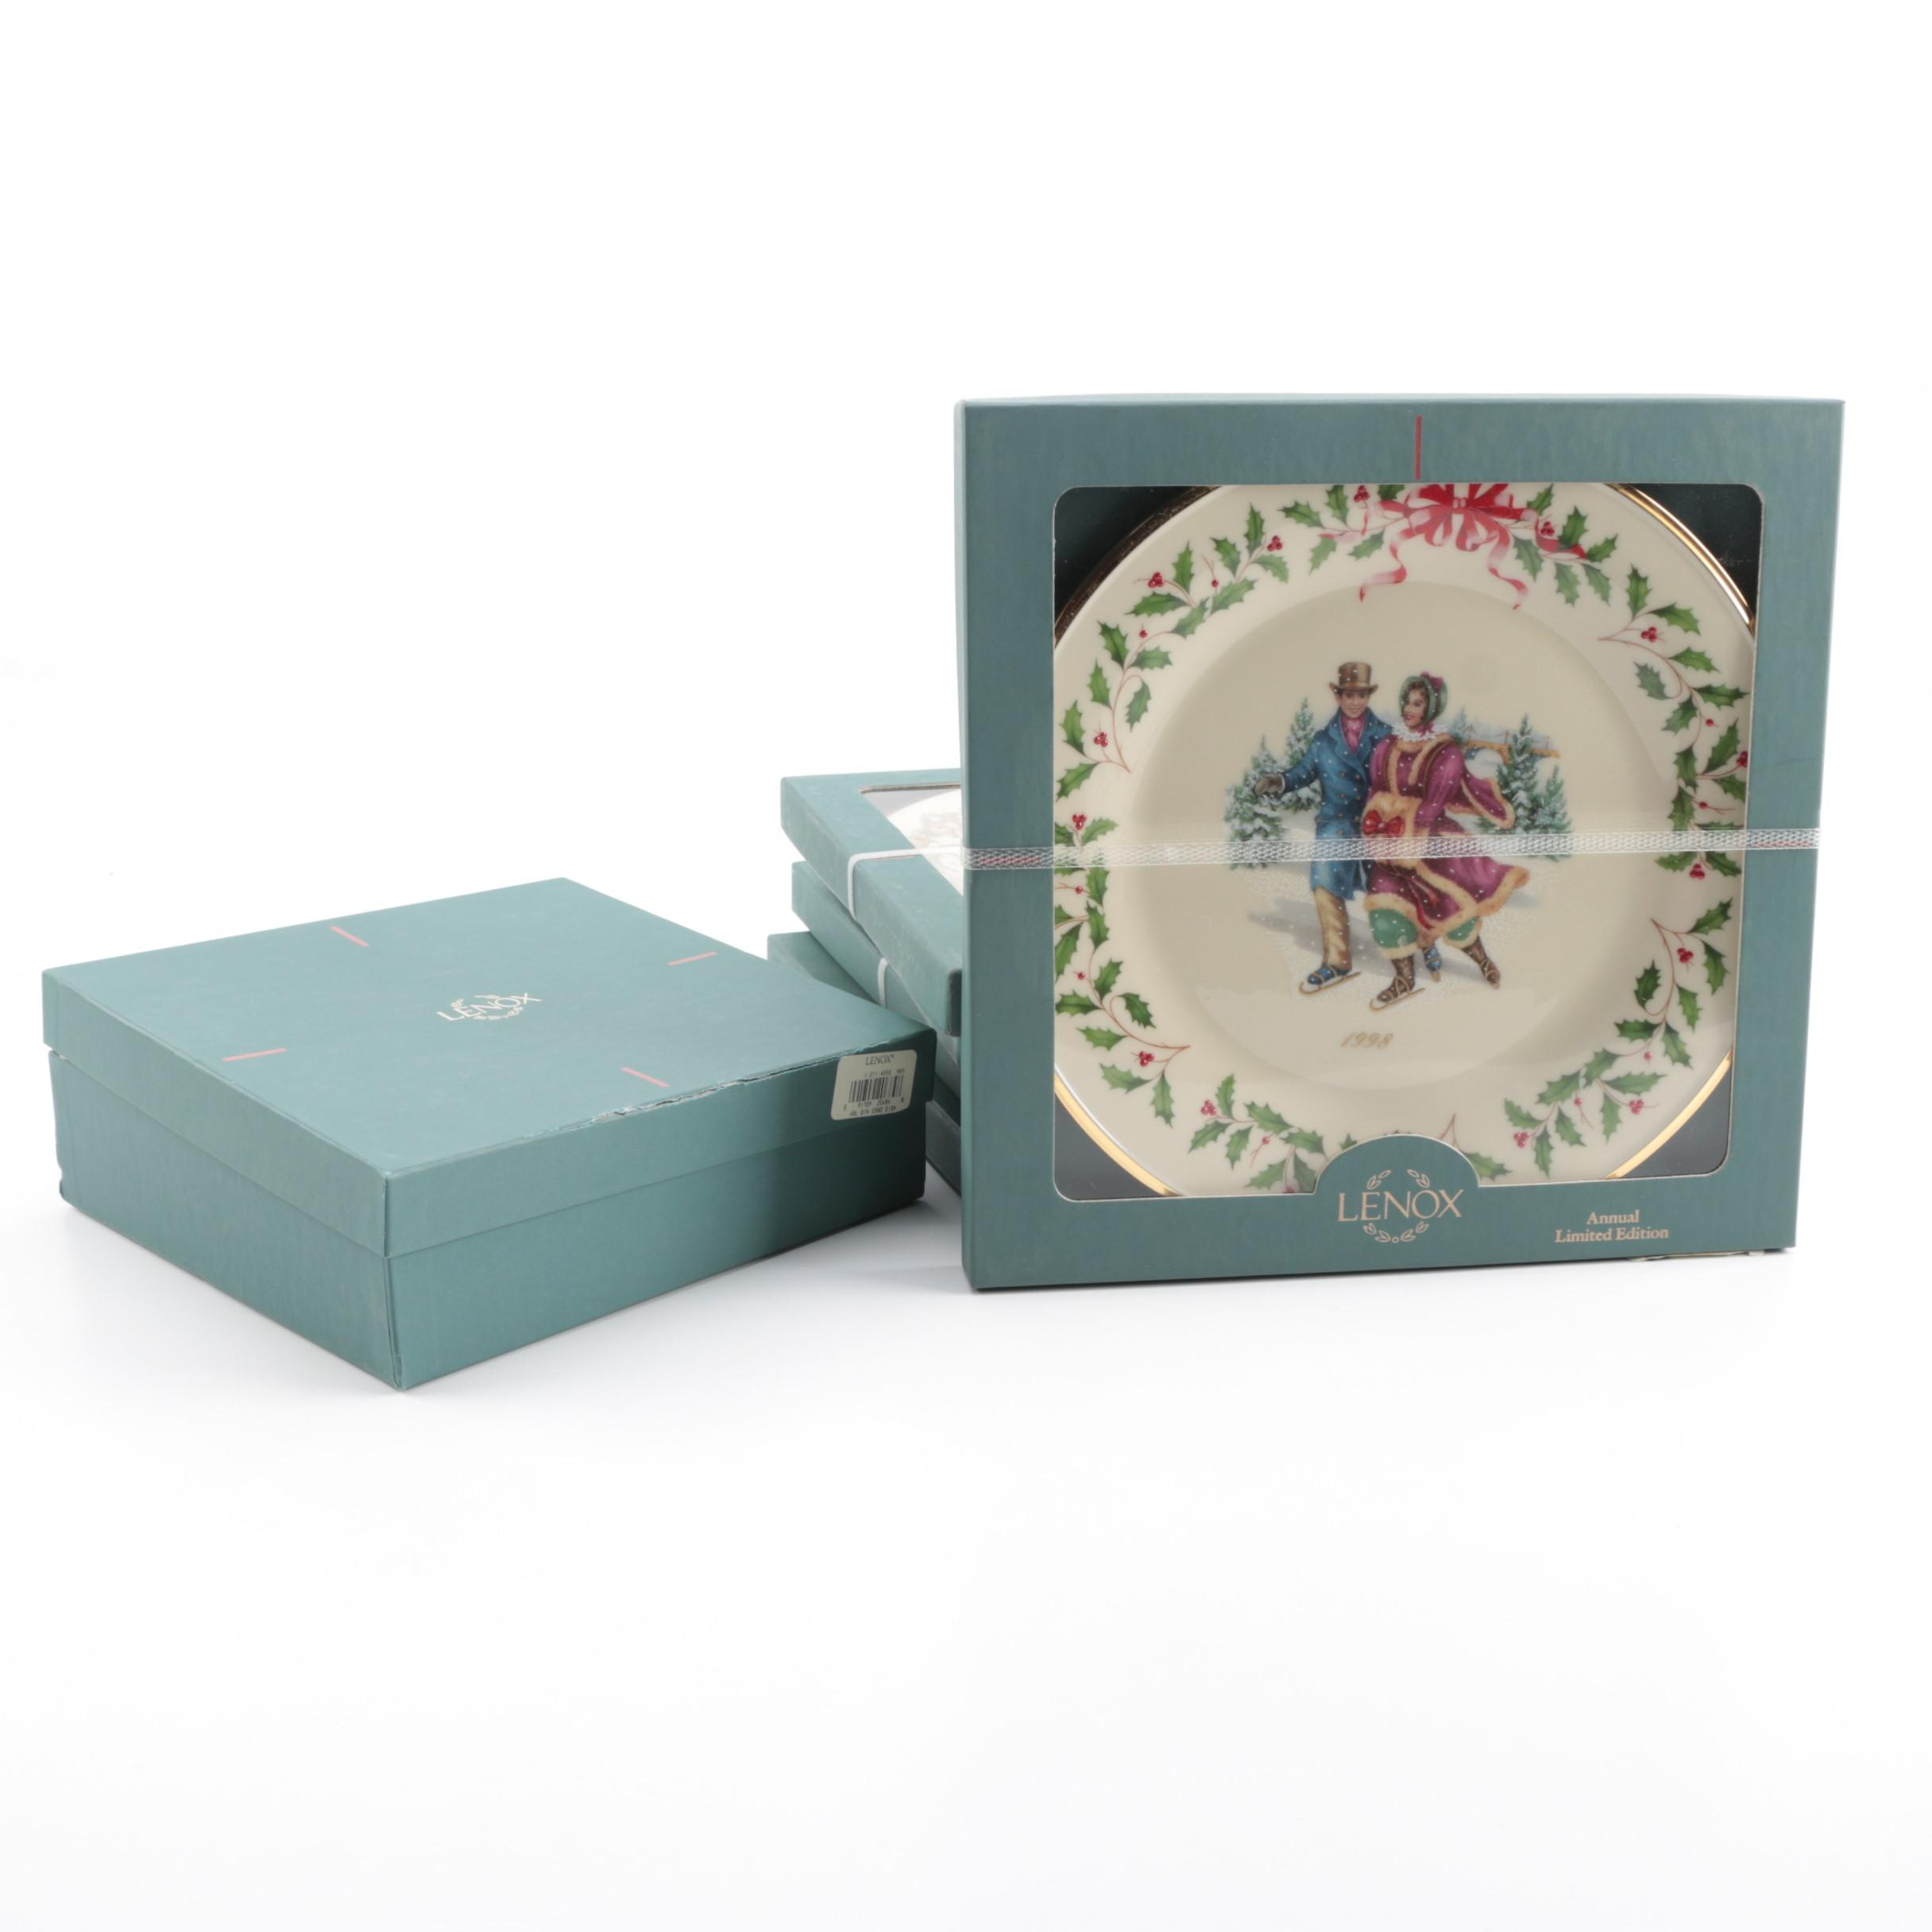 Limited Edition Lenox Ceramic Plates and Bowl